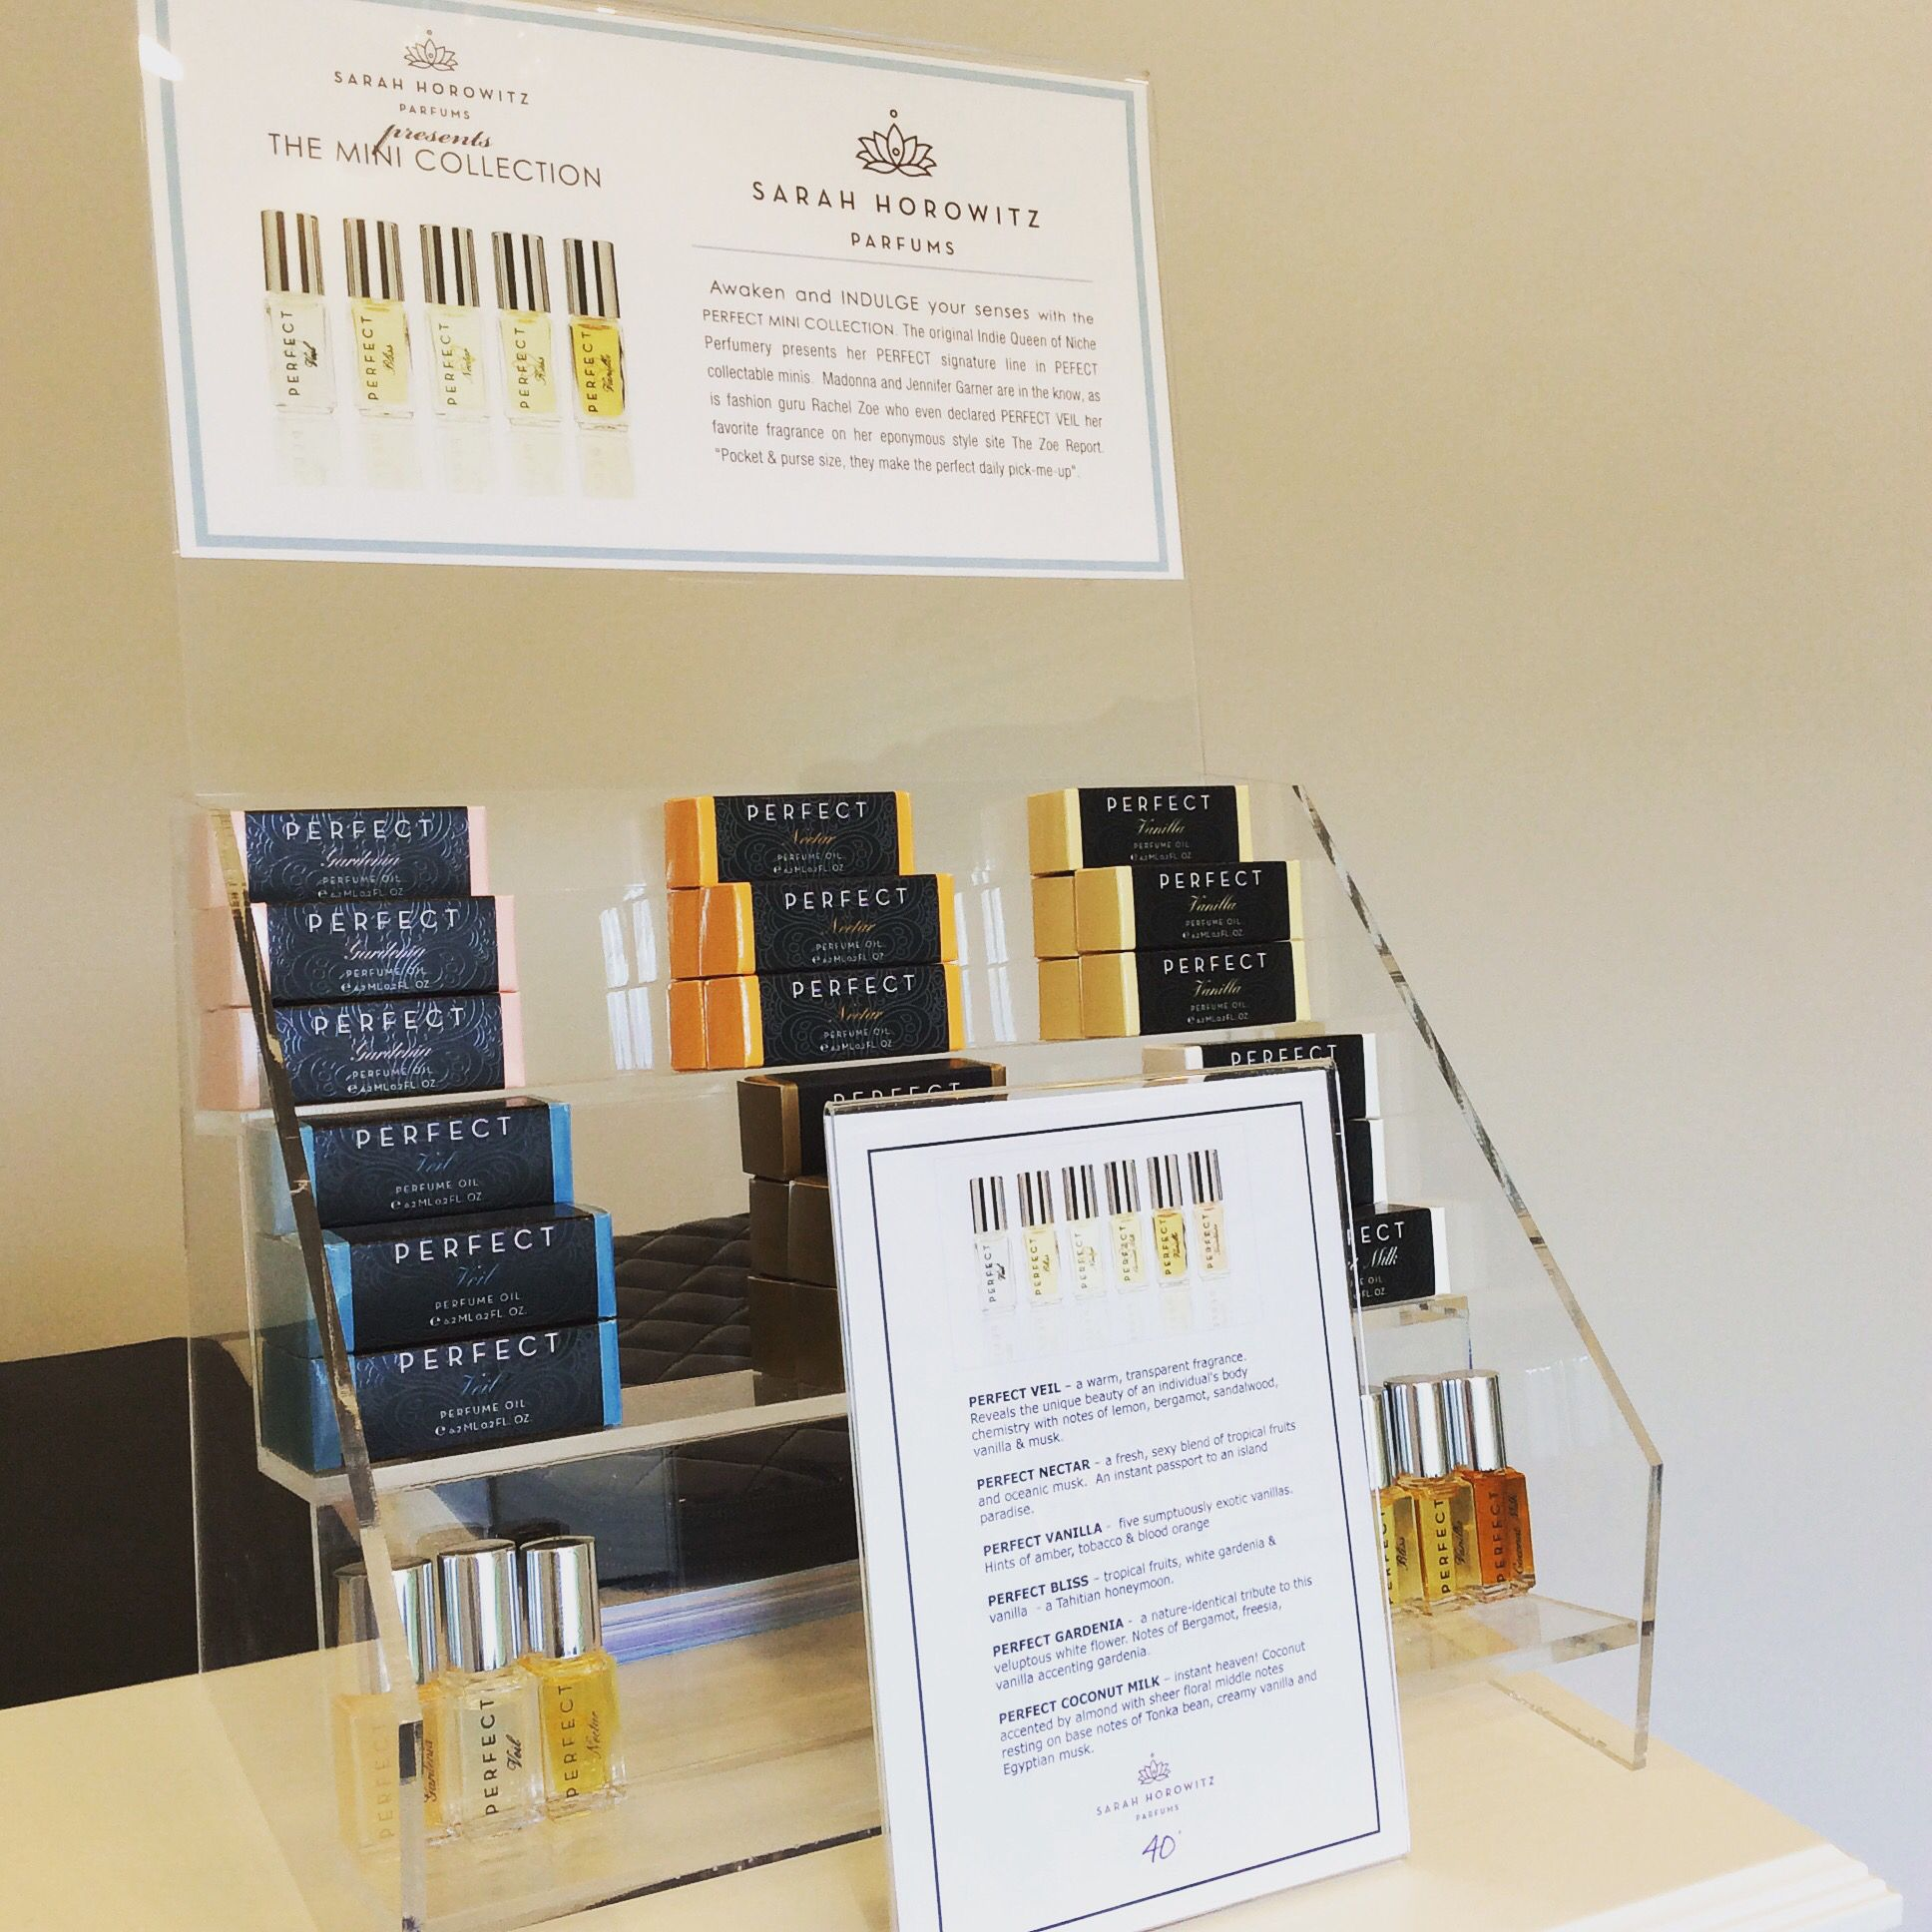 Featuring Sarah Horowitz perfume oils.  Captivating yet subtle and lasts all day/night.  Perfect.